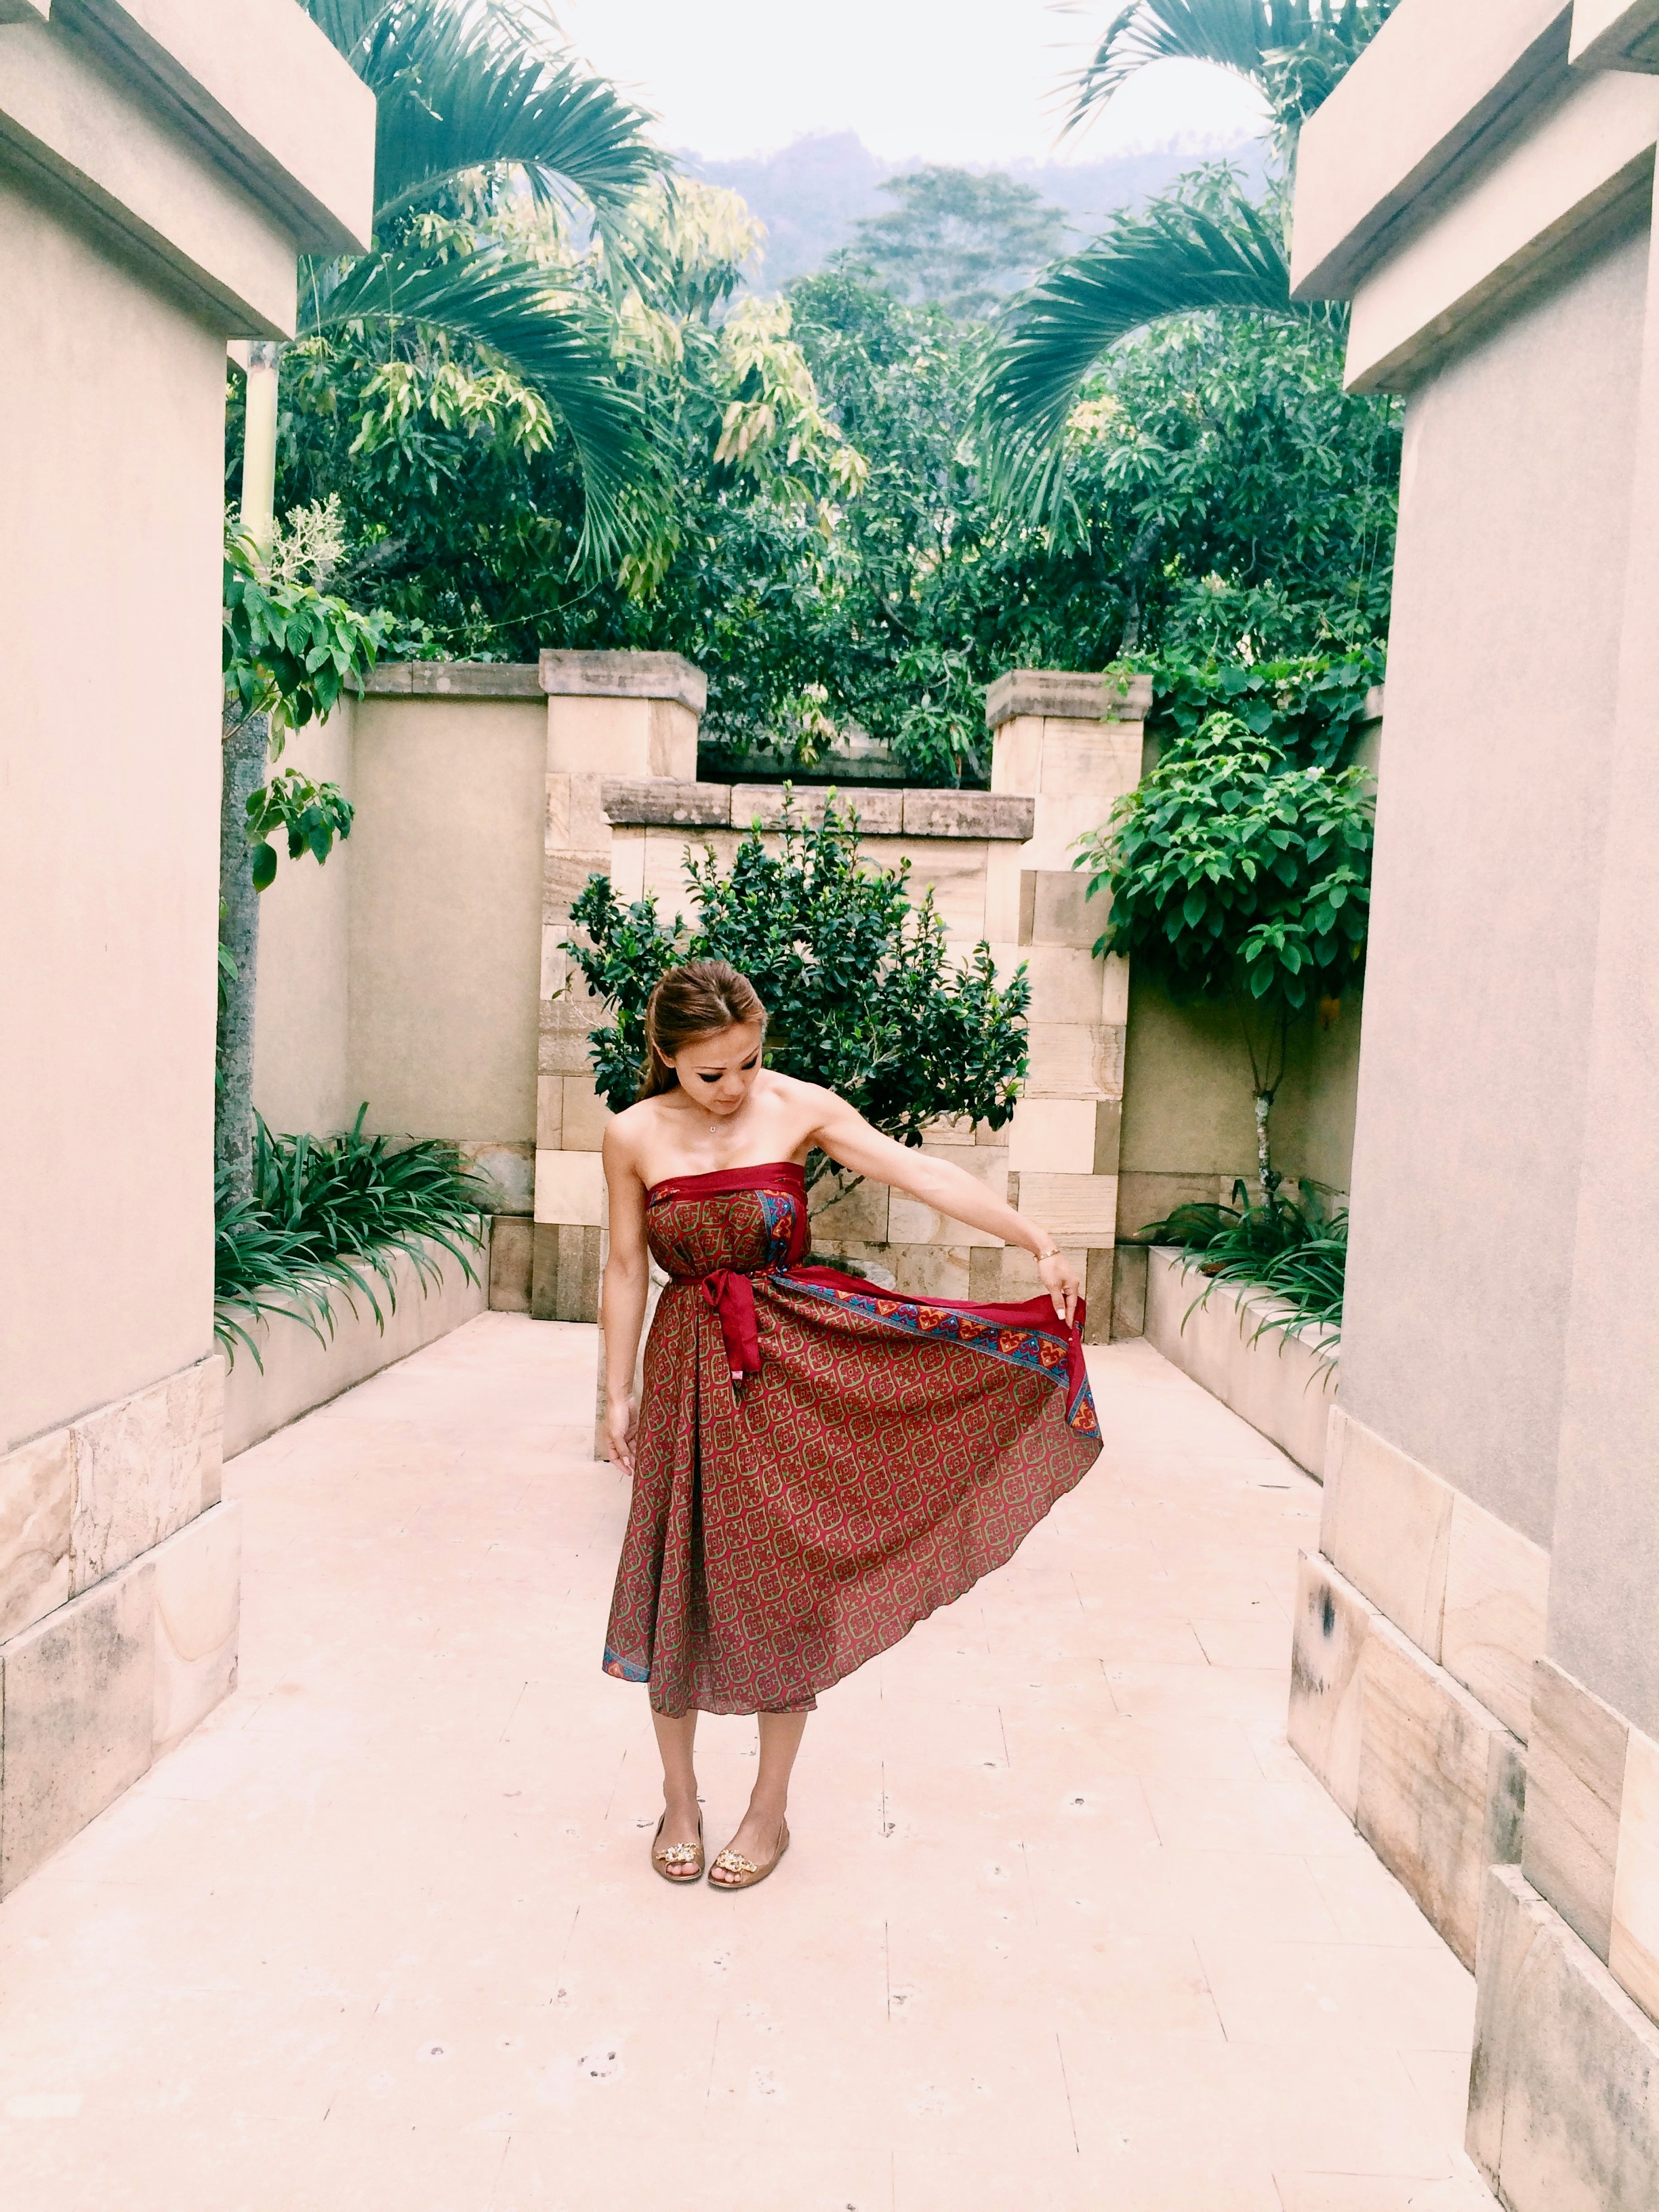 Our personal courtyard/walkway that leads to your bedroom and me sporting a balinese inspired silk wrap worn as a dress.